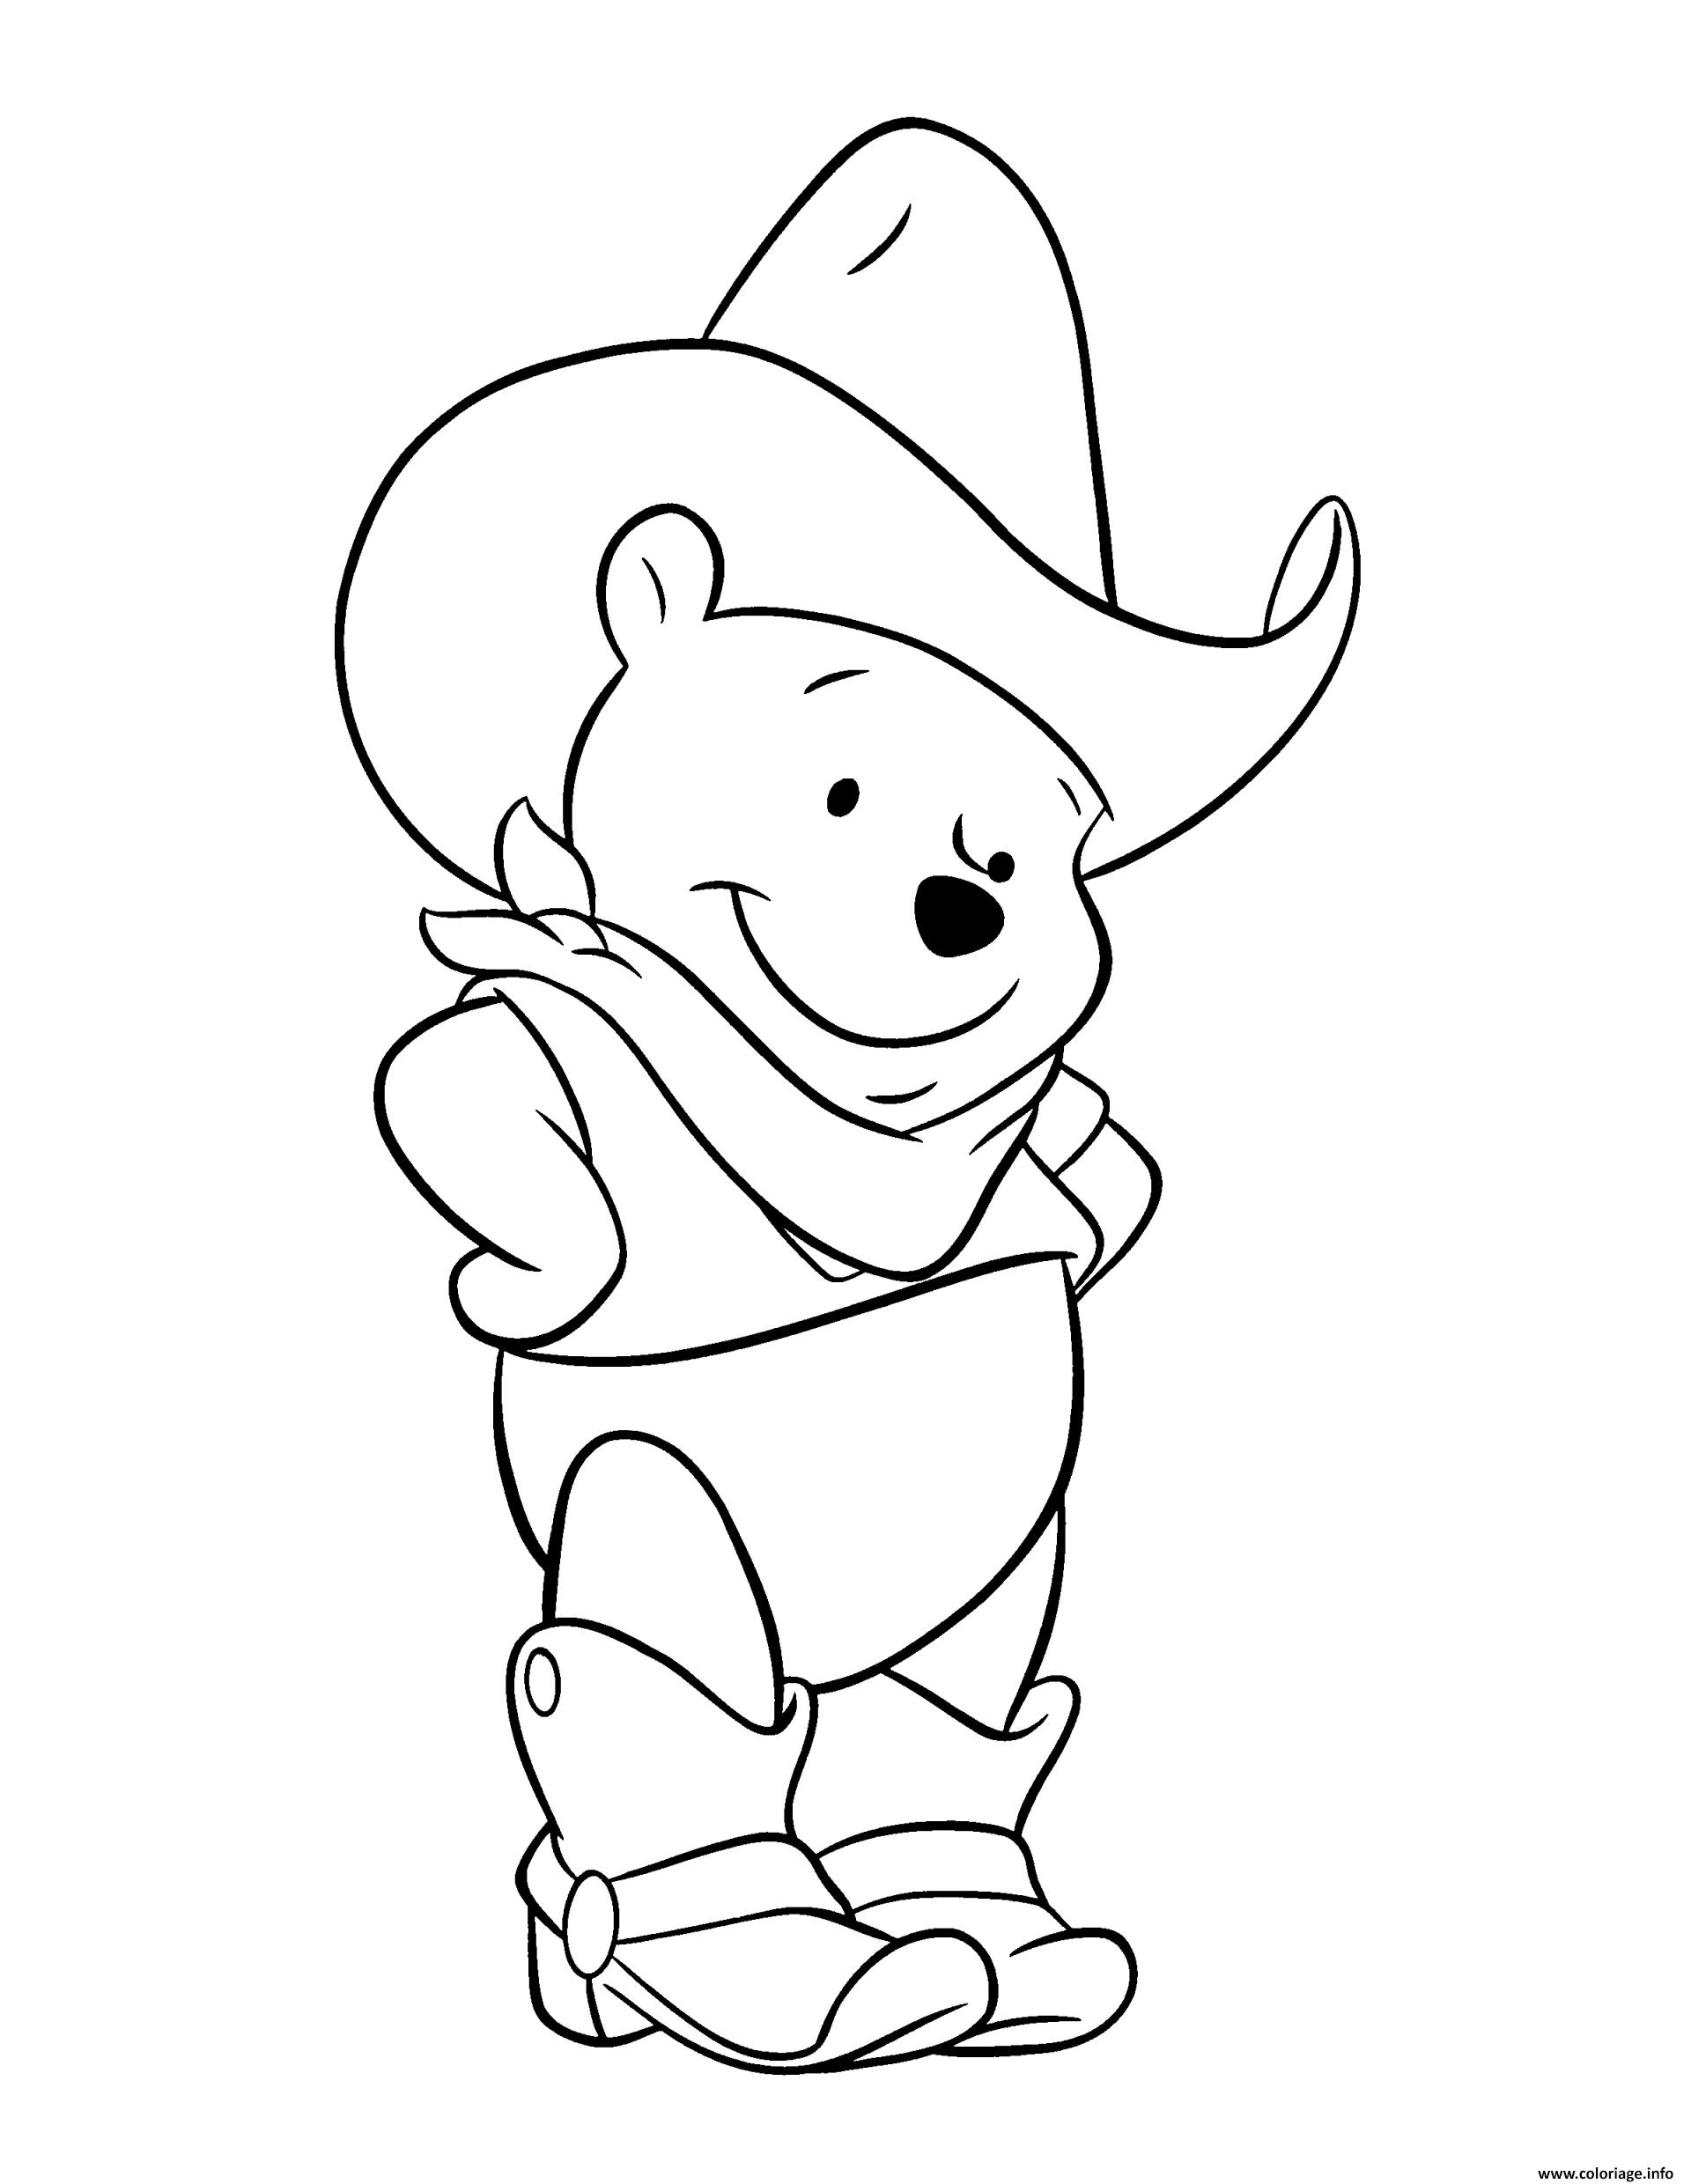 Coloriage winnie de pooh ourson en mode cowboy - Coloriage d ourson a imprimer ...